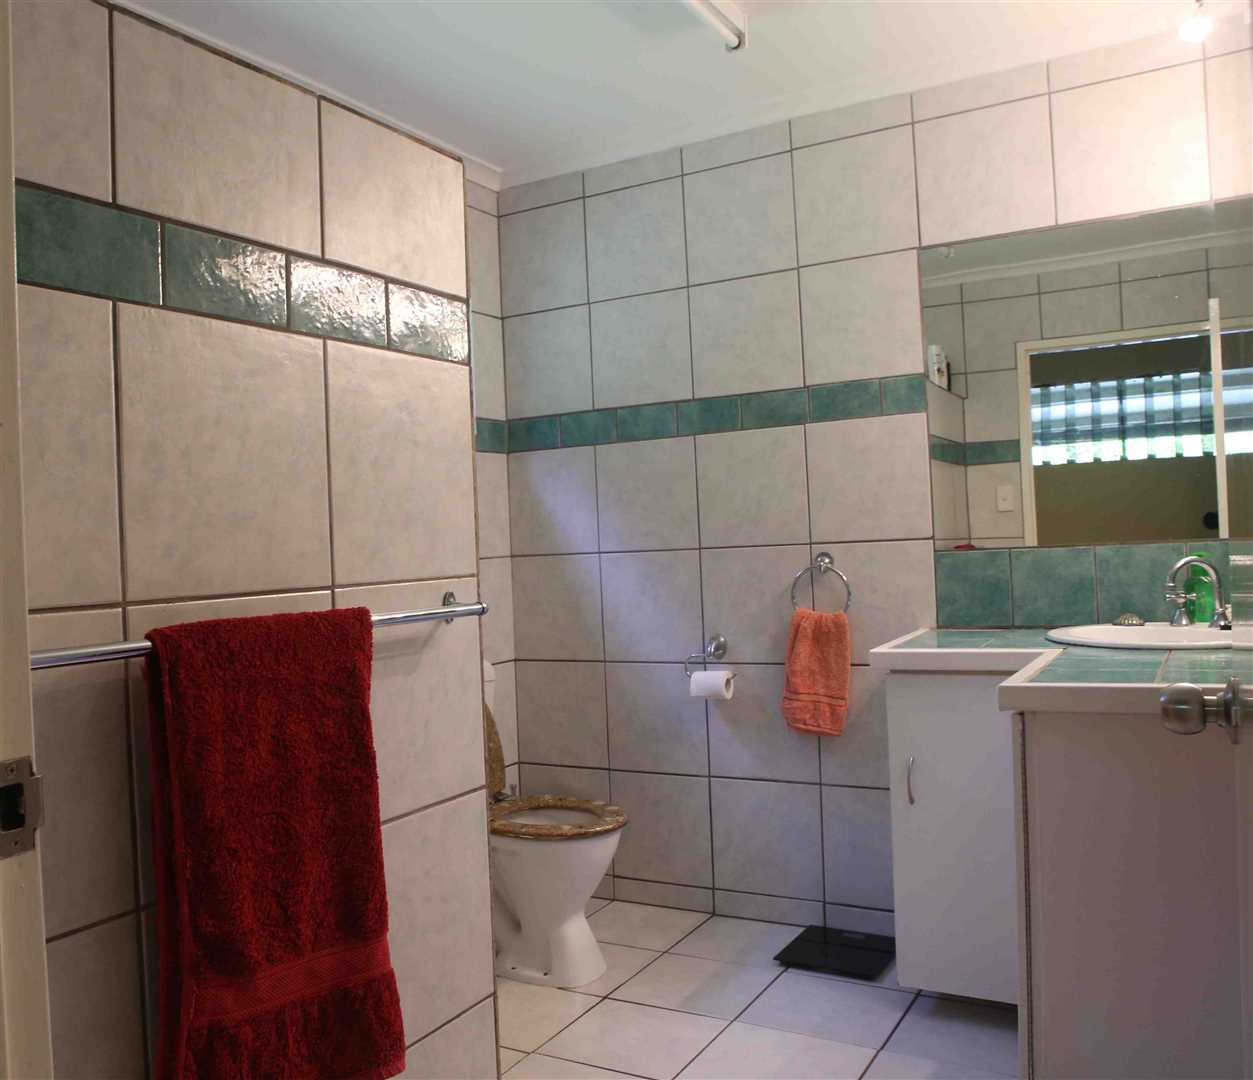 Inside view of part of home showing part of the bathroom